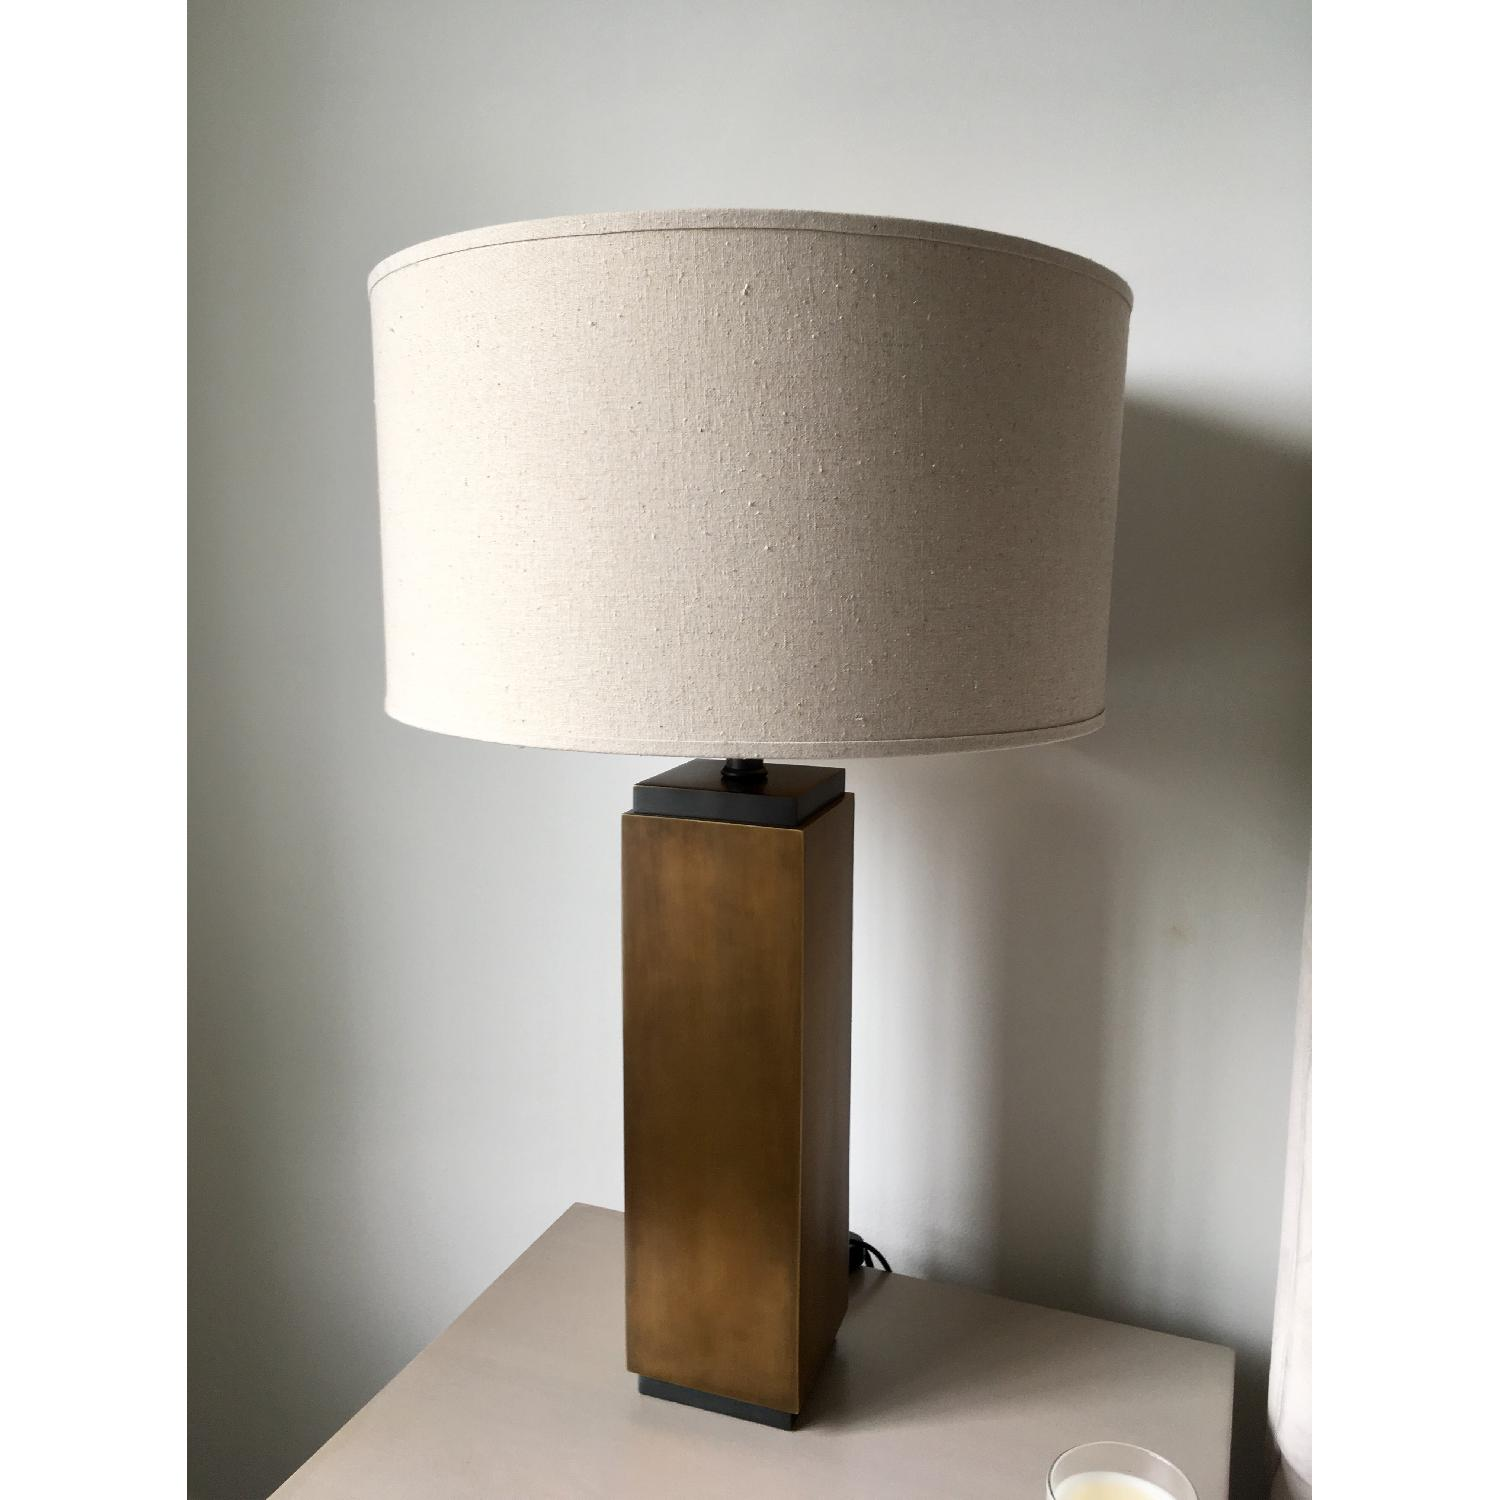 Restoration Hardware Square Column Accent Lamps - image-2